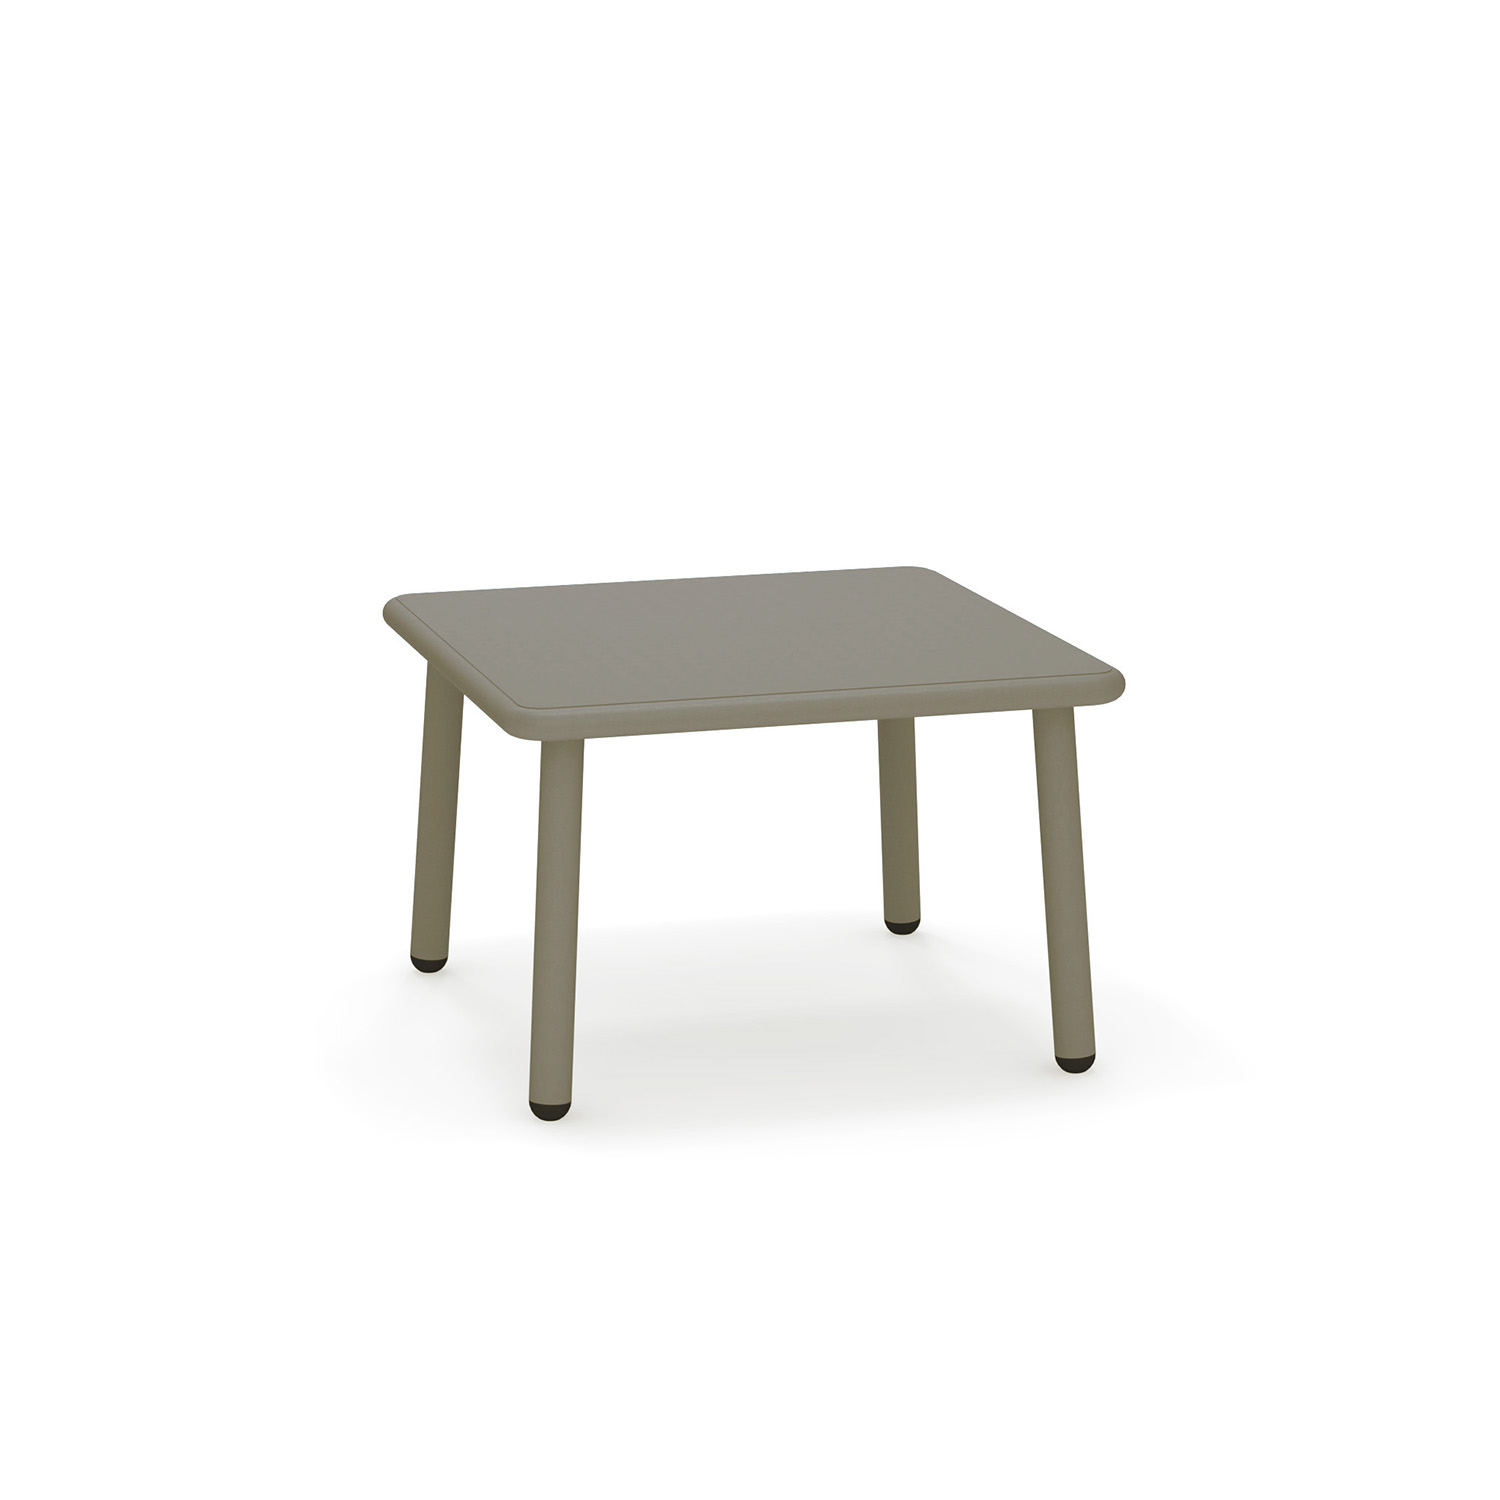 Yard Low Table - <p>Yard is a complete range of furniture, made up of a chair, armchair, fixed tables, relaxing armchairs, coffee tables of various sizes and a sunbed. The signature feature of the Yard collection is the way it mixes materials, such as stainless steel or ash with aluminium. The collection is completed with counter tables of various sizes, for both contract and residential settings.</p>